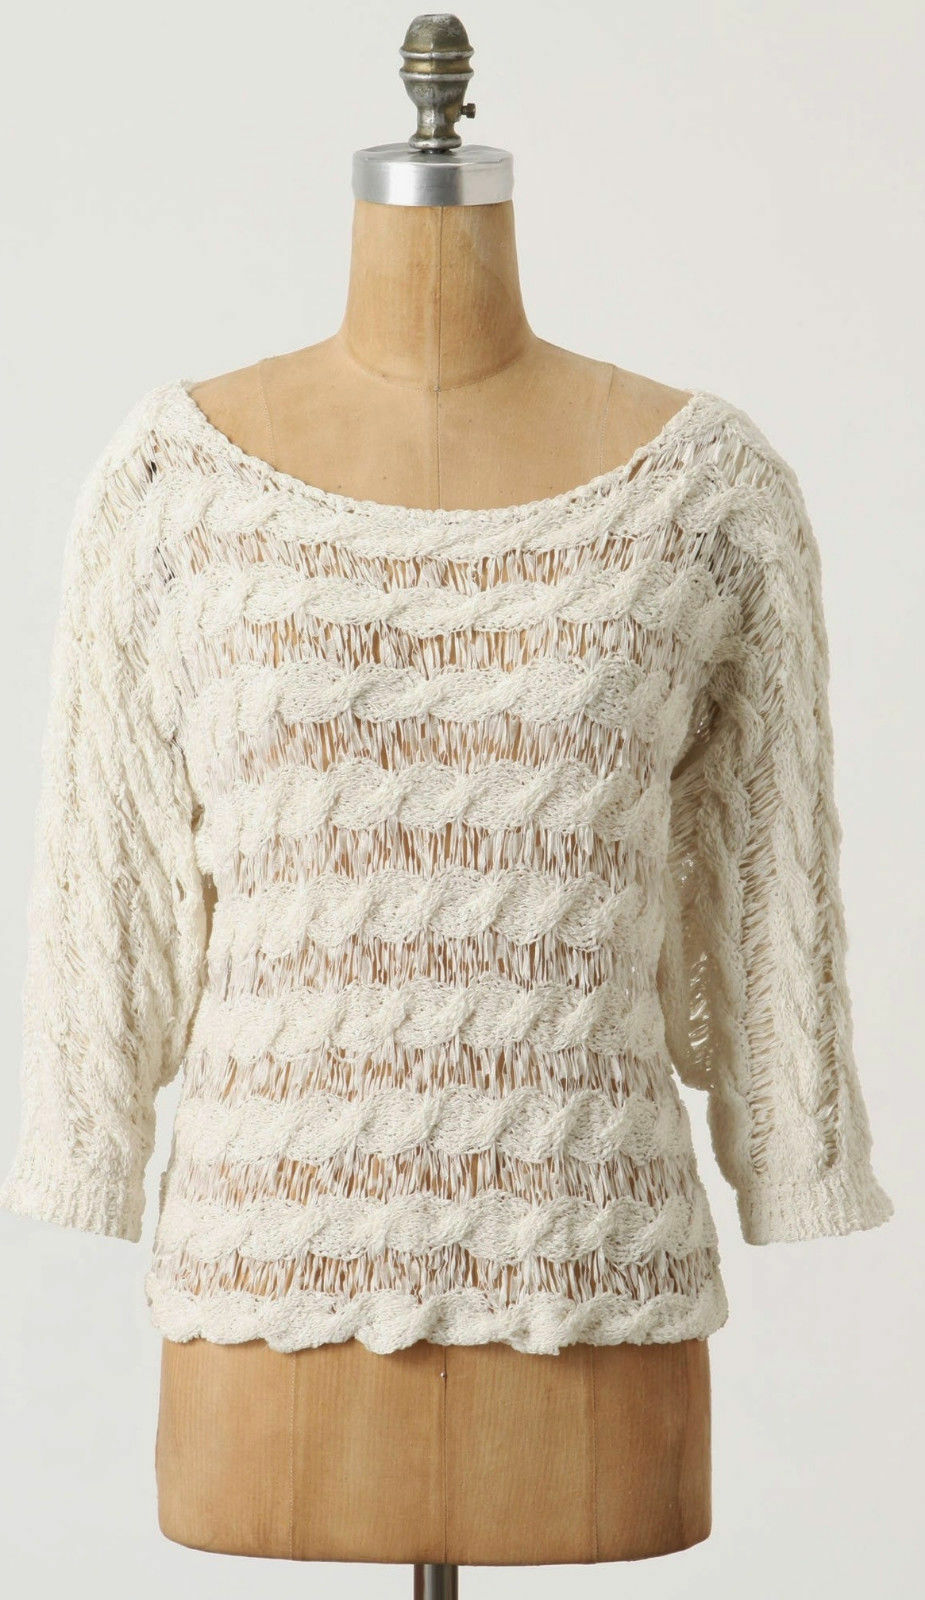 NEW Anthropologie Size L Yarn Tape Ivory Sweater by Moth